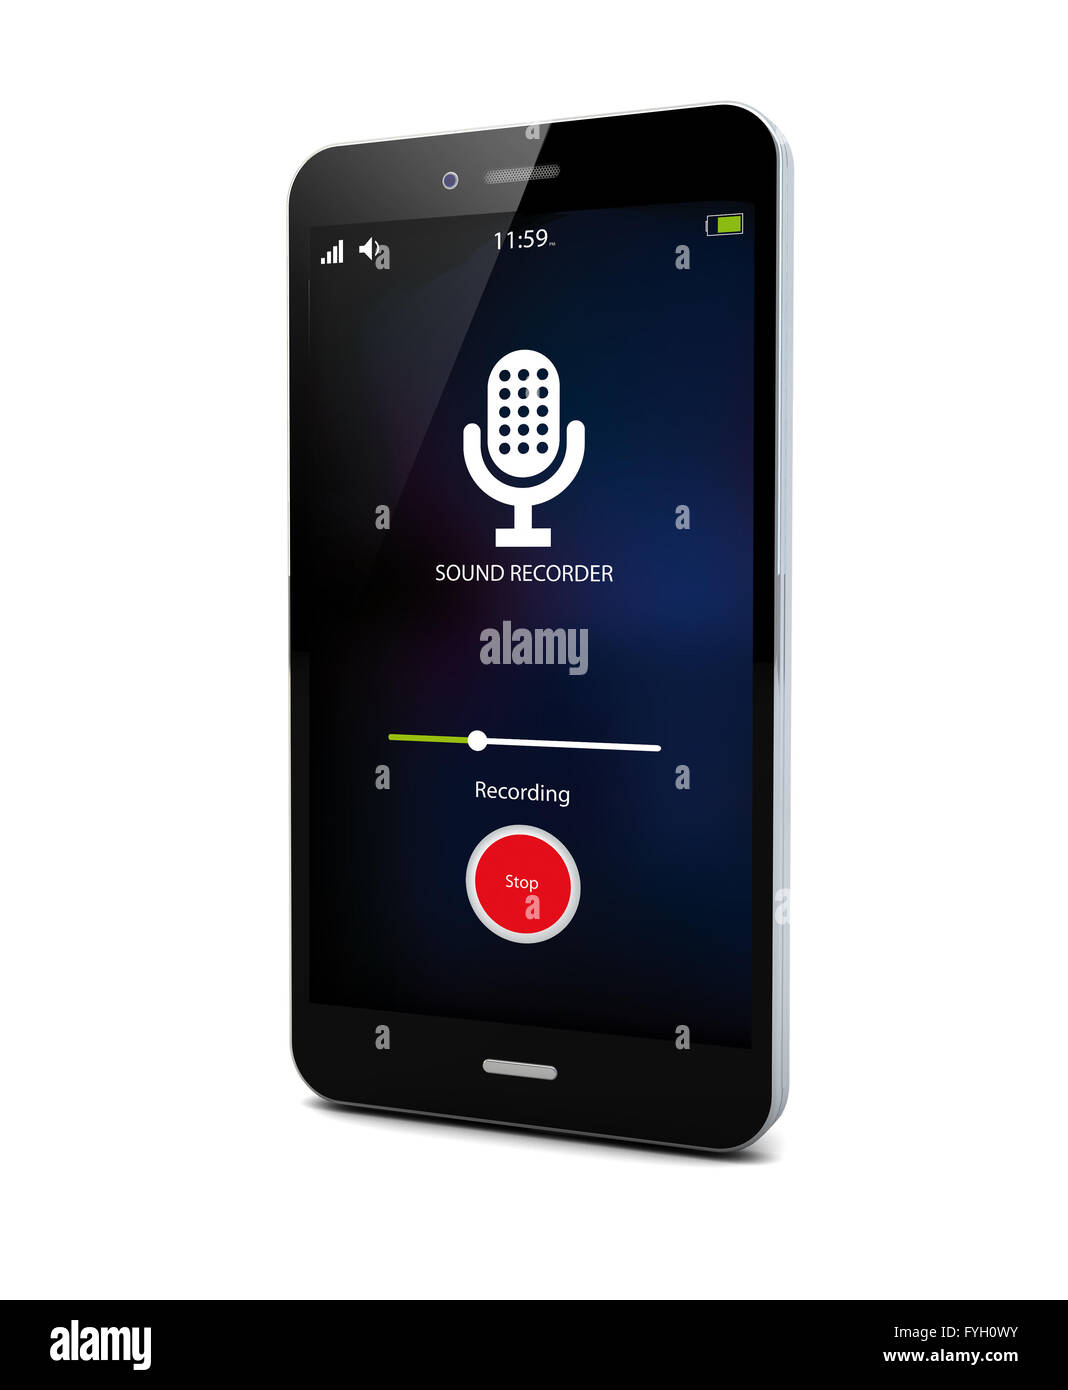 spy concept: sound recorder app on a smartphone - Stock Image